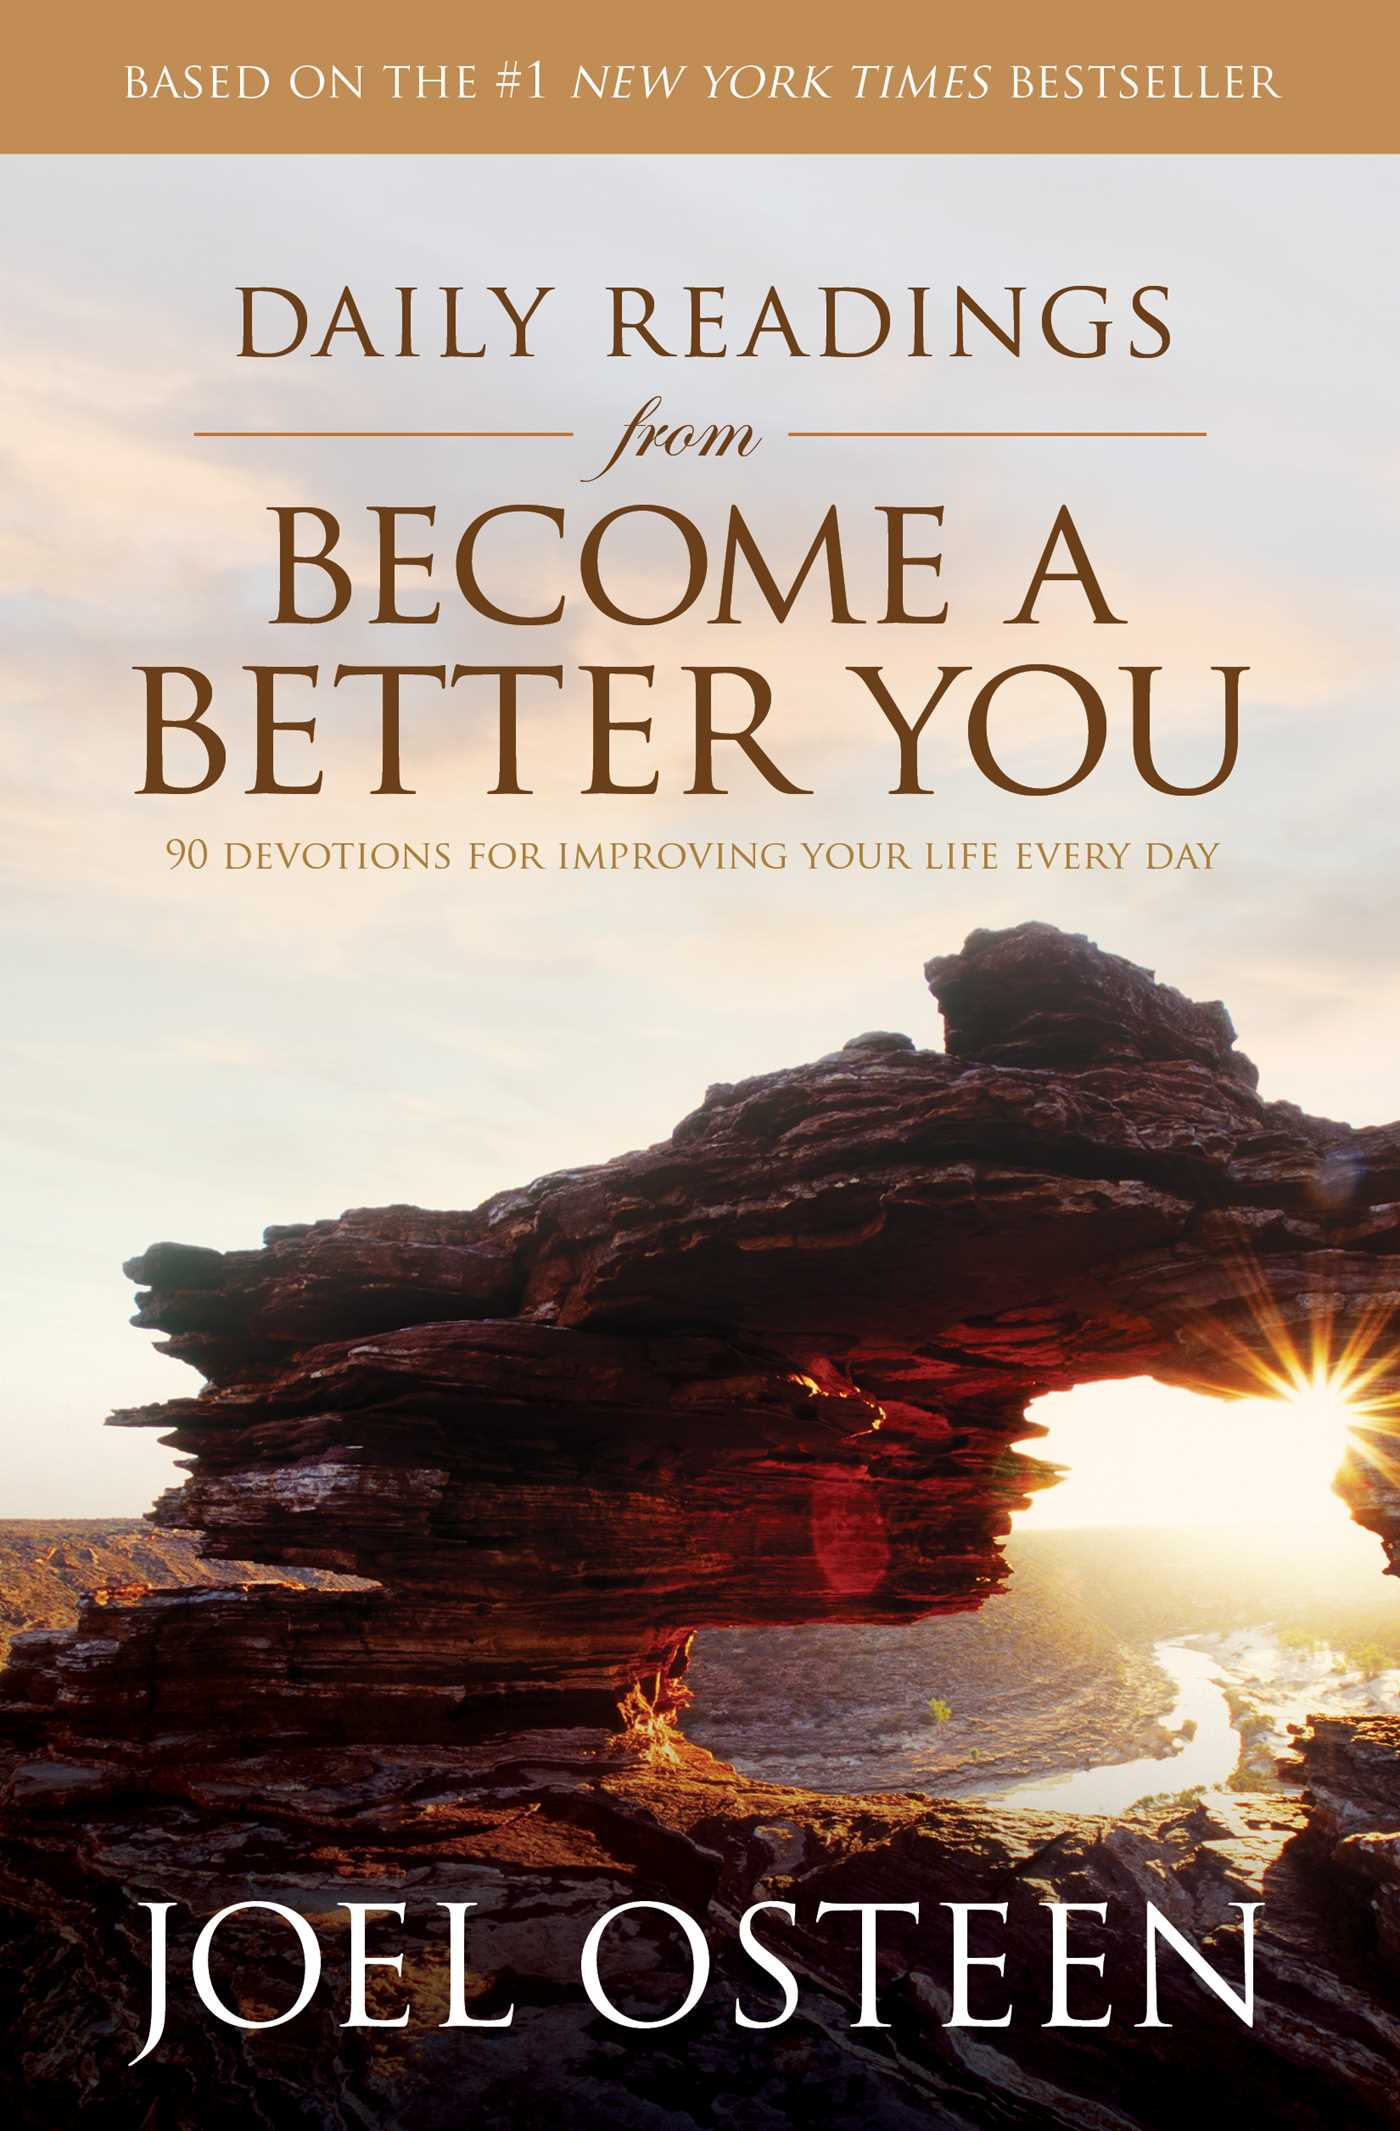 Become a better you | book by joel osteen | official publisher.